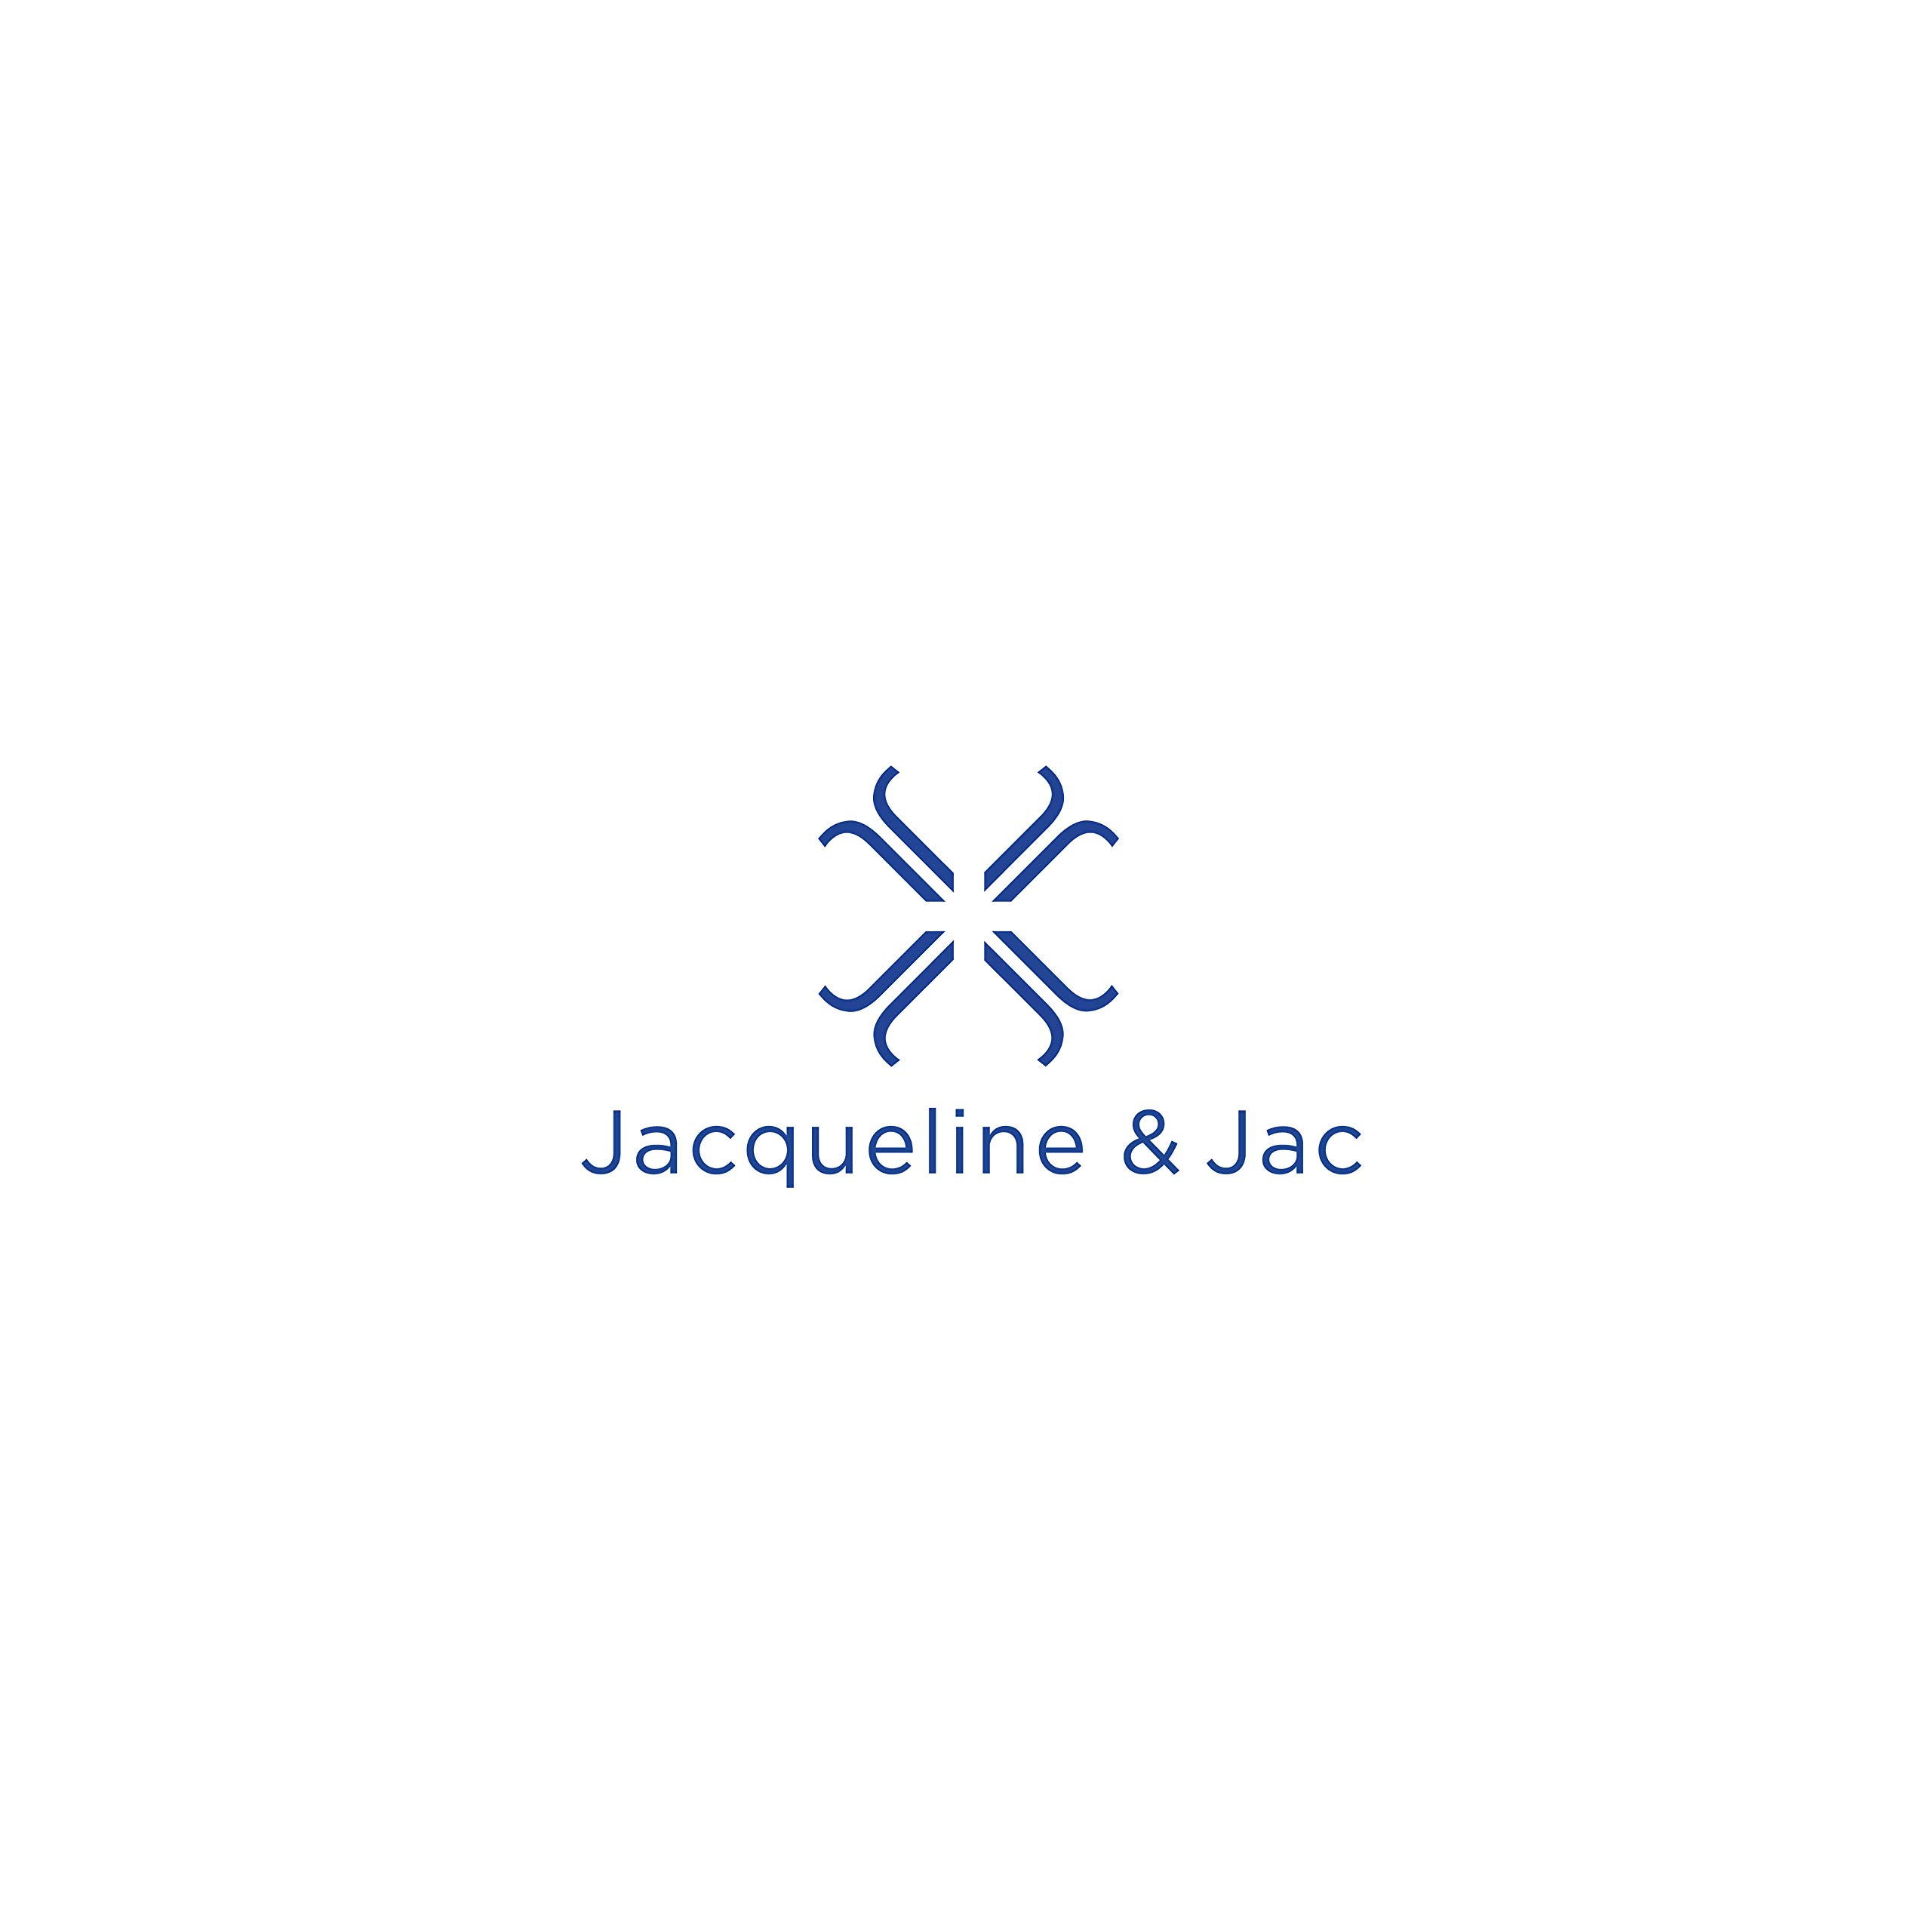 Jacqueline & Jac Newborn Baby Beanie Hat- Natural Cotton Blend. Ideal Unisex Gift for Baby Girl and Boy (Blush, Medium (1-4 Years)) by Jacqueline & Jac